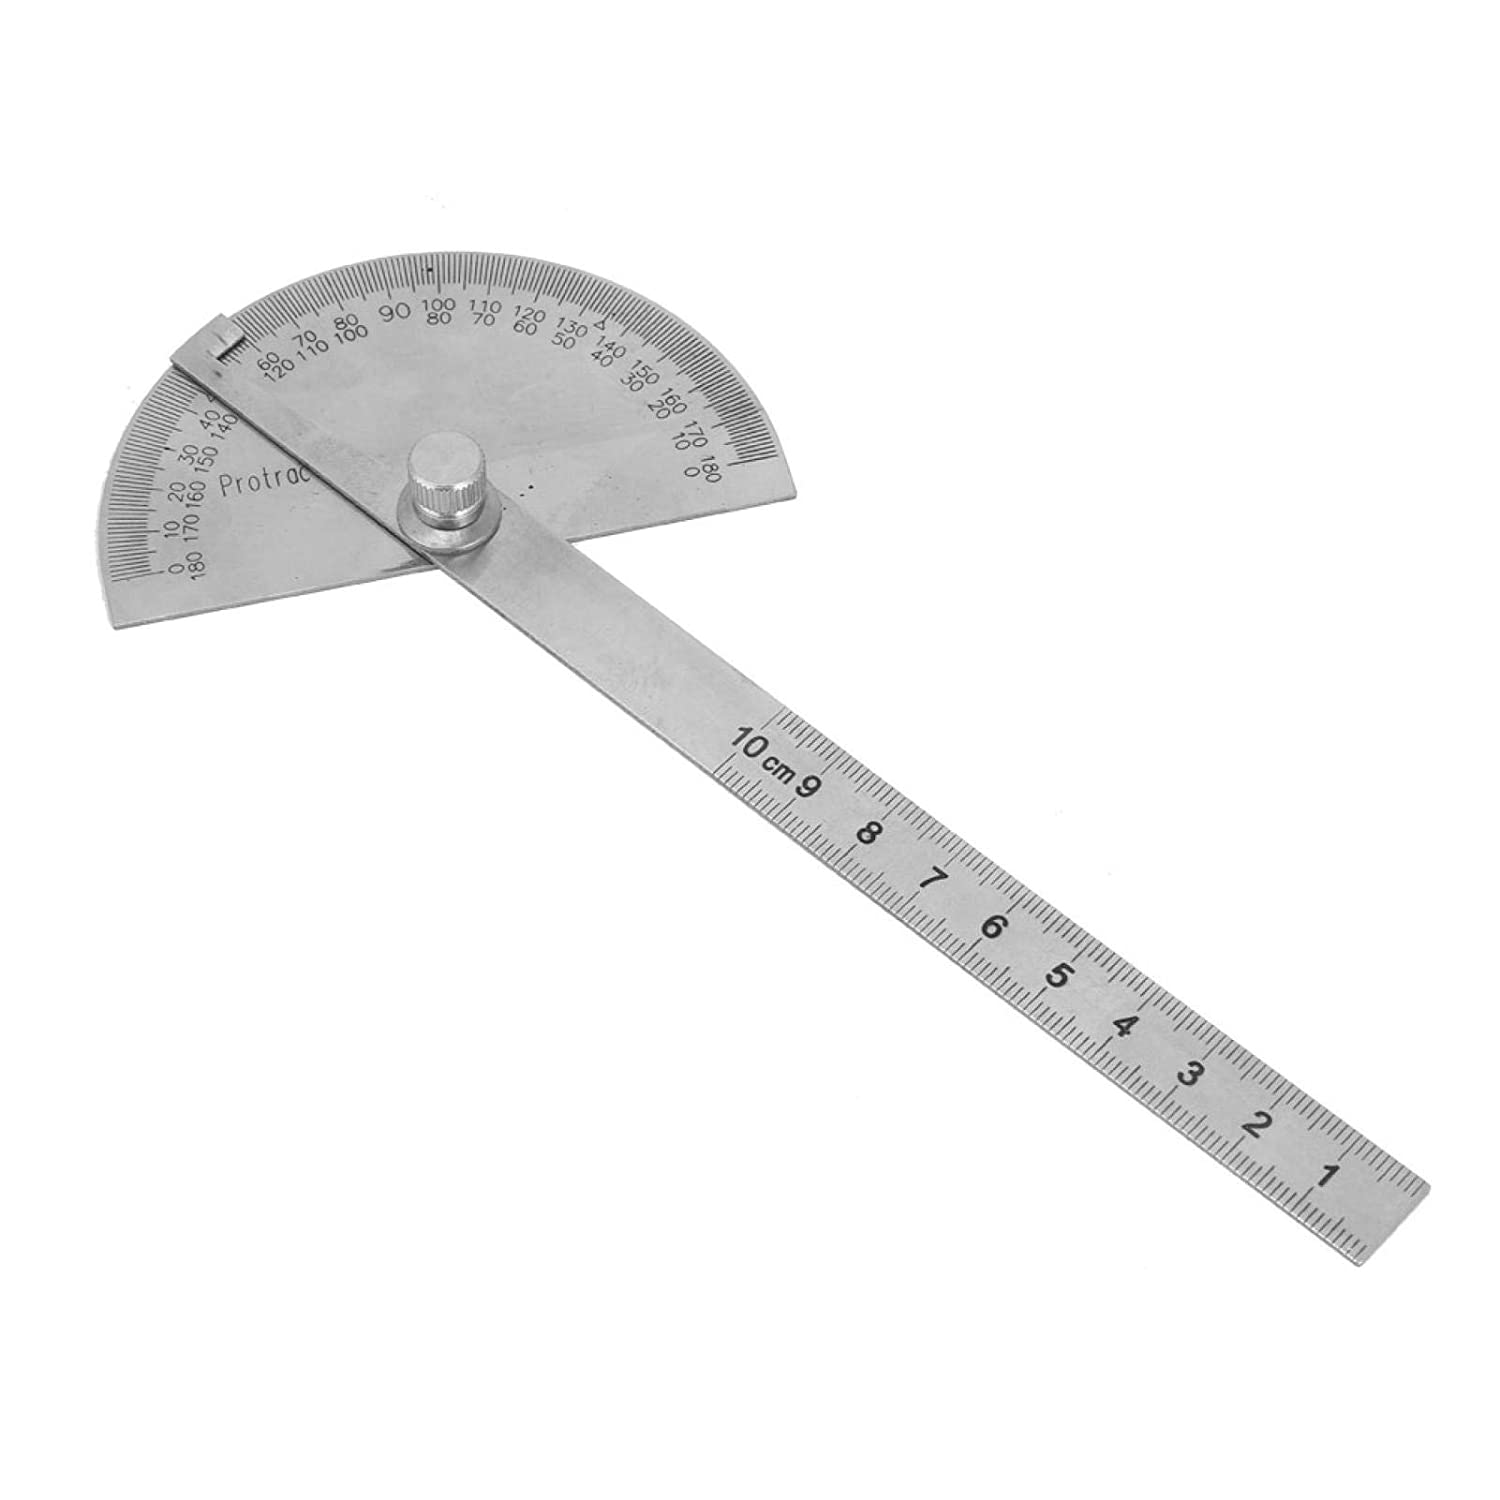 Durable High Precision Rotary Financial service sales sale 1Pcs Protractor Degree